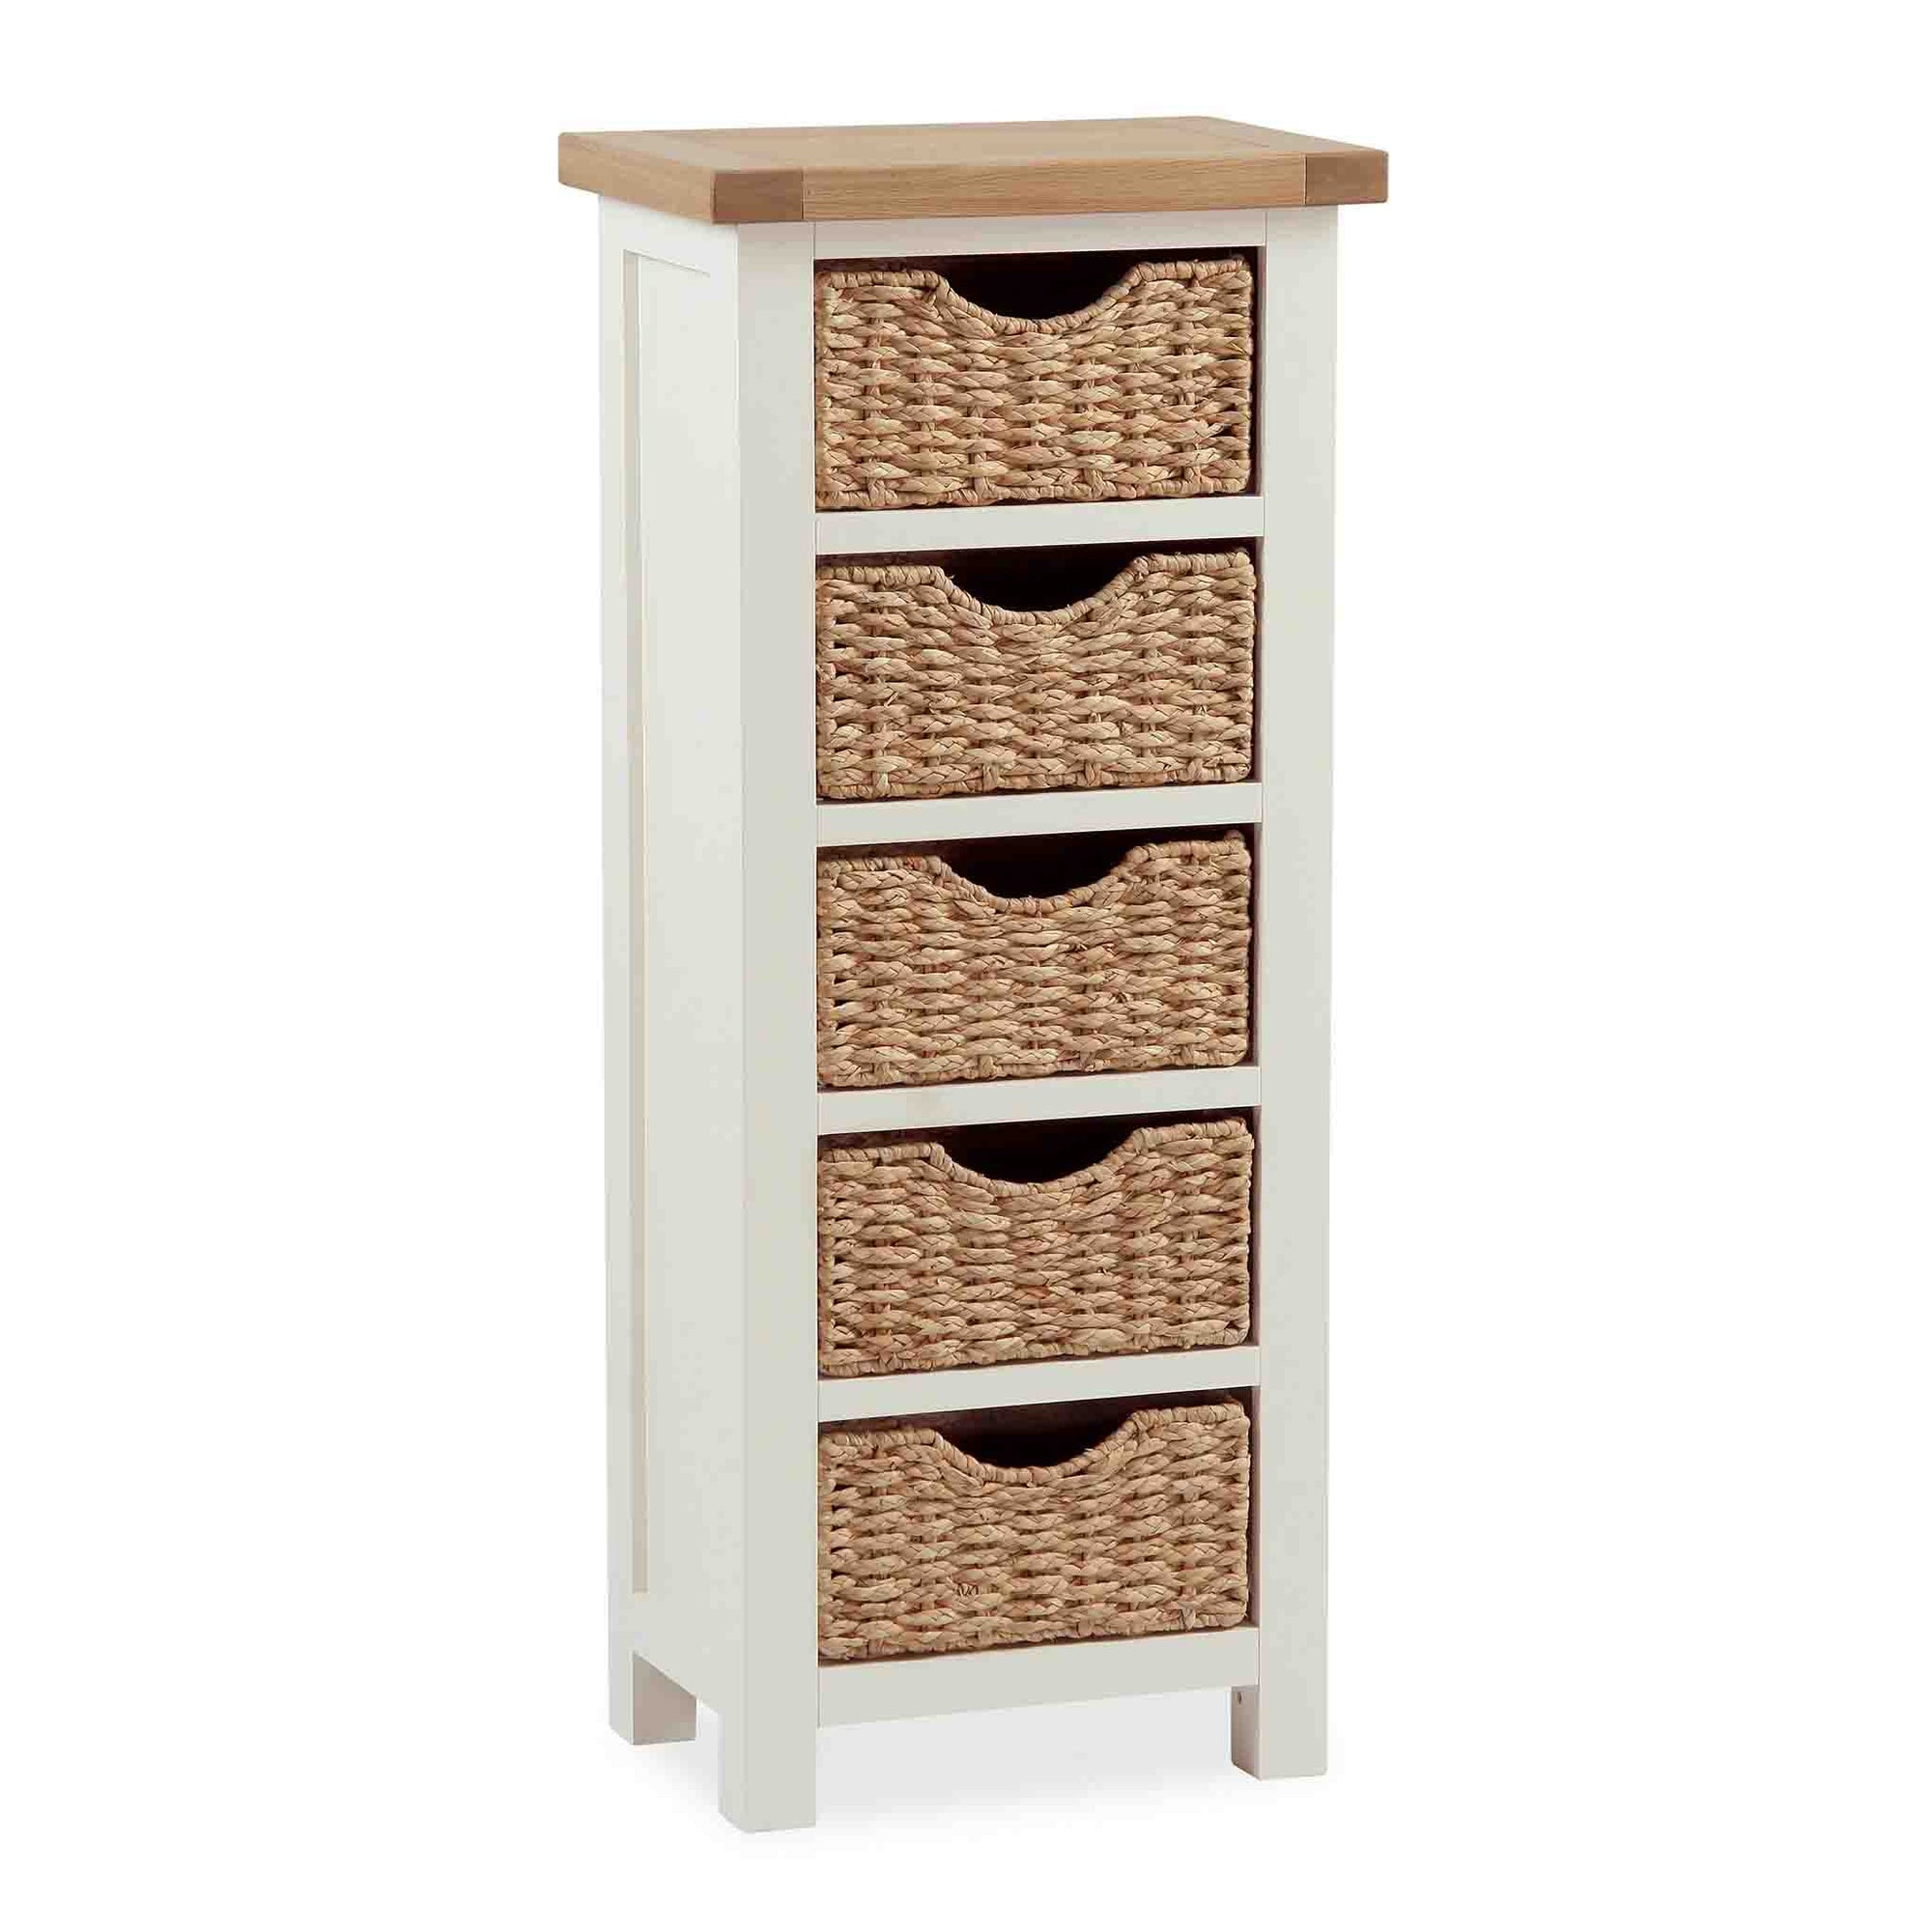 The Daymer Cream Tallboy Chest with Storage Baskets from Roseland Furniture